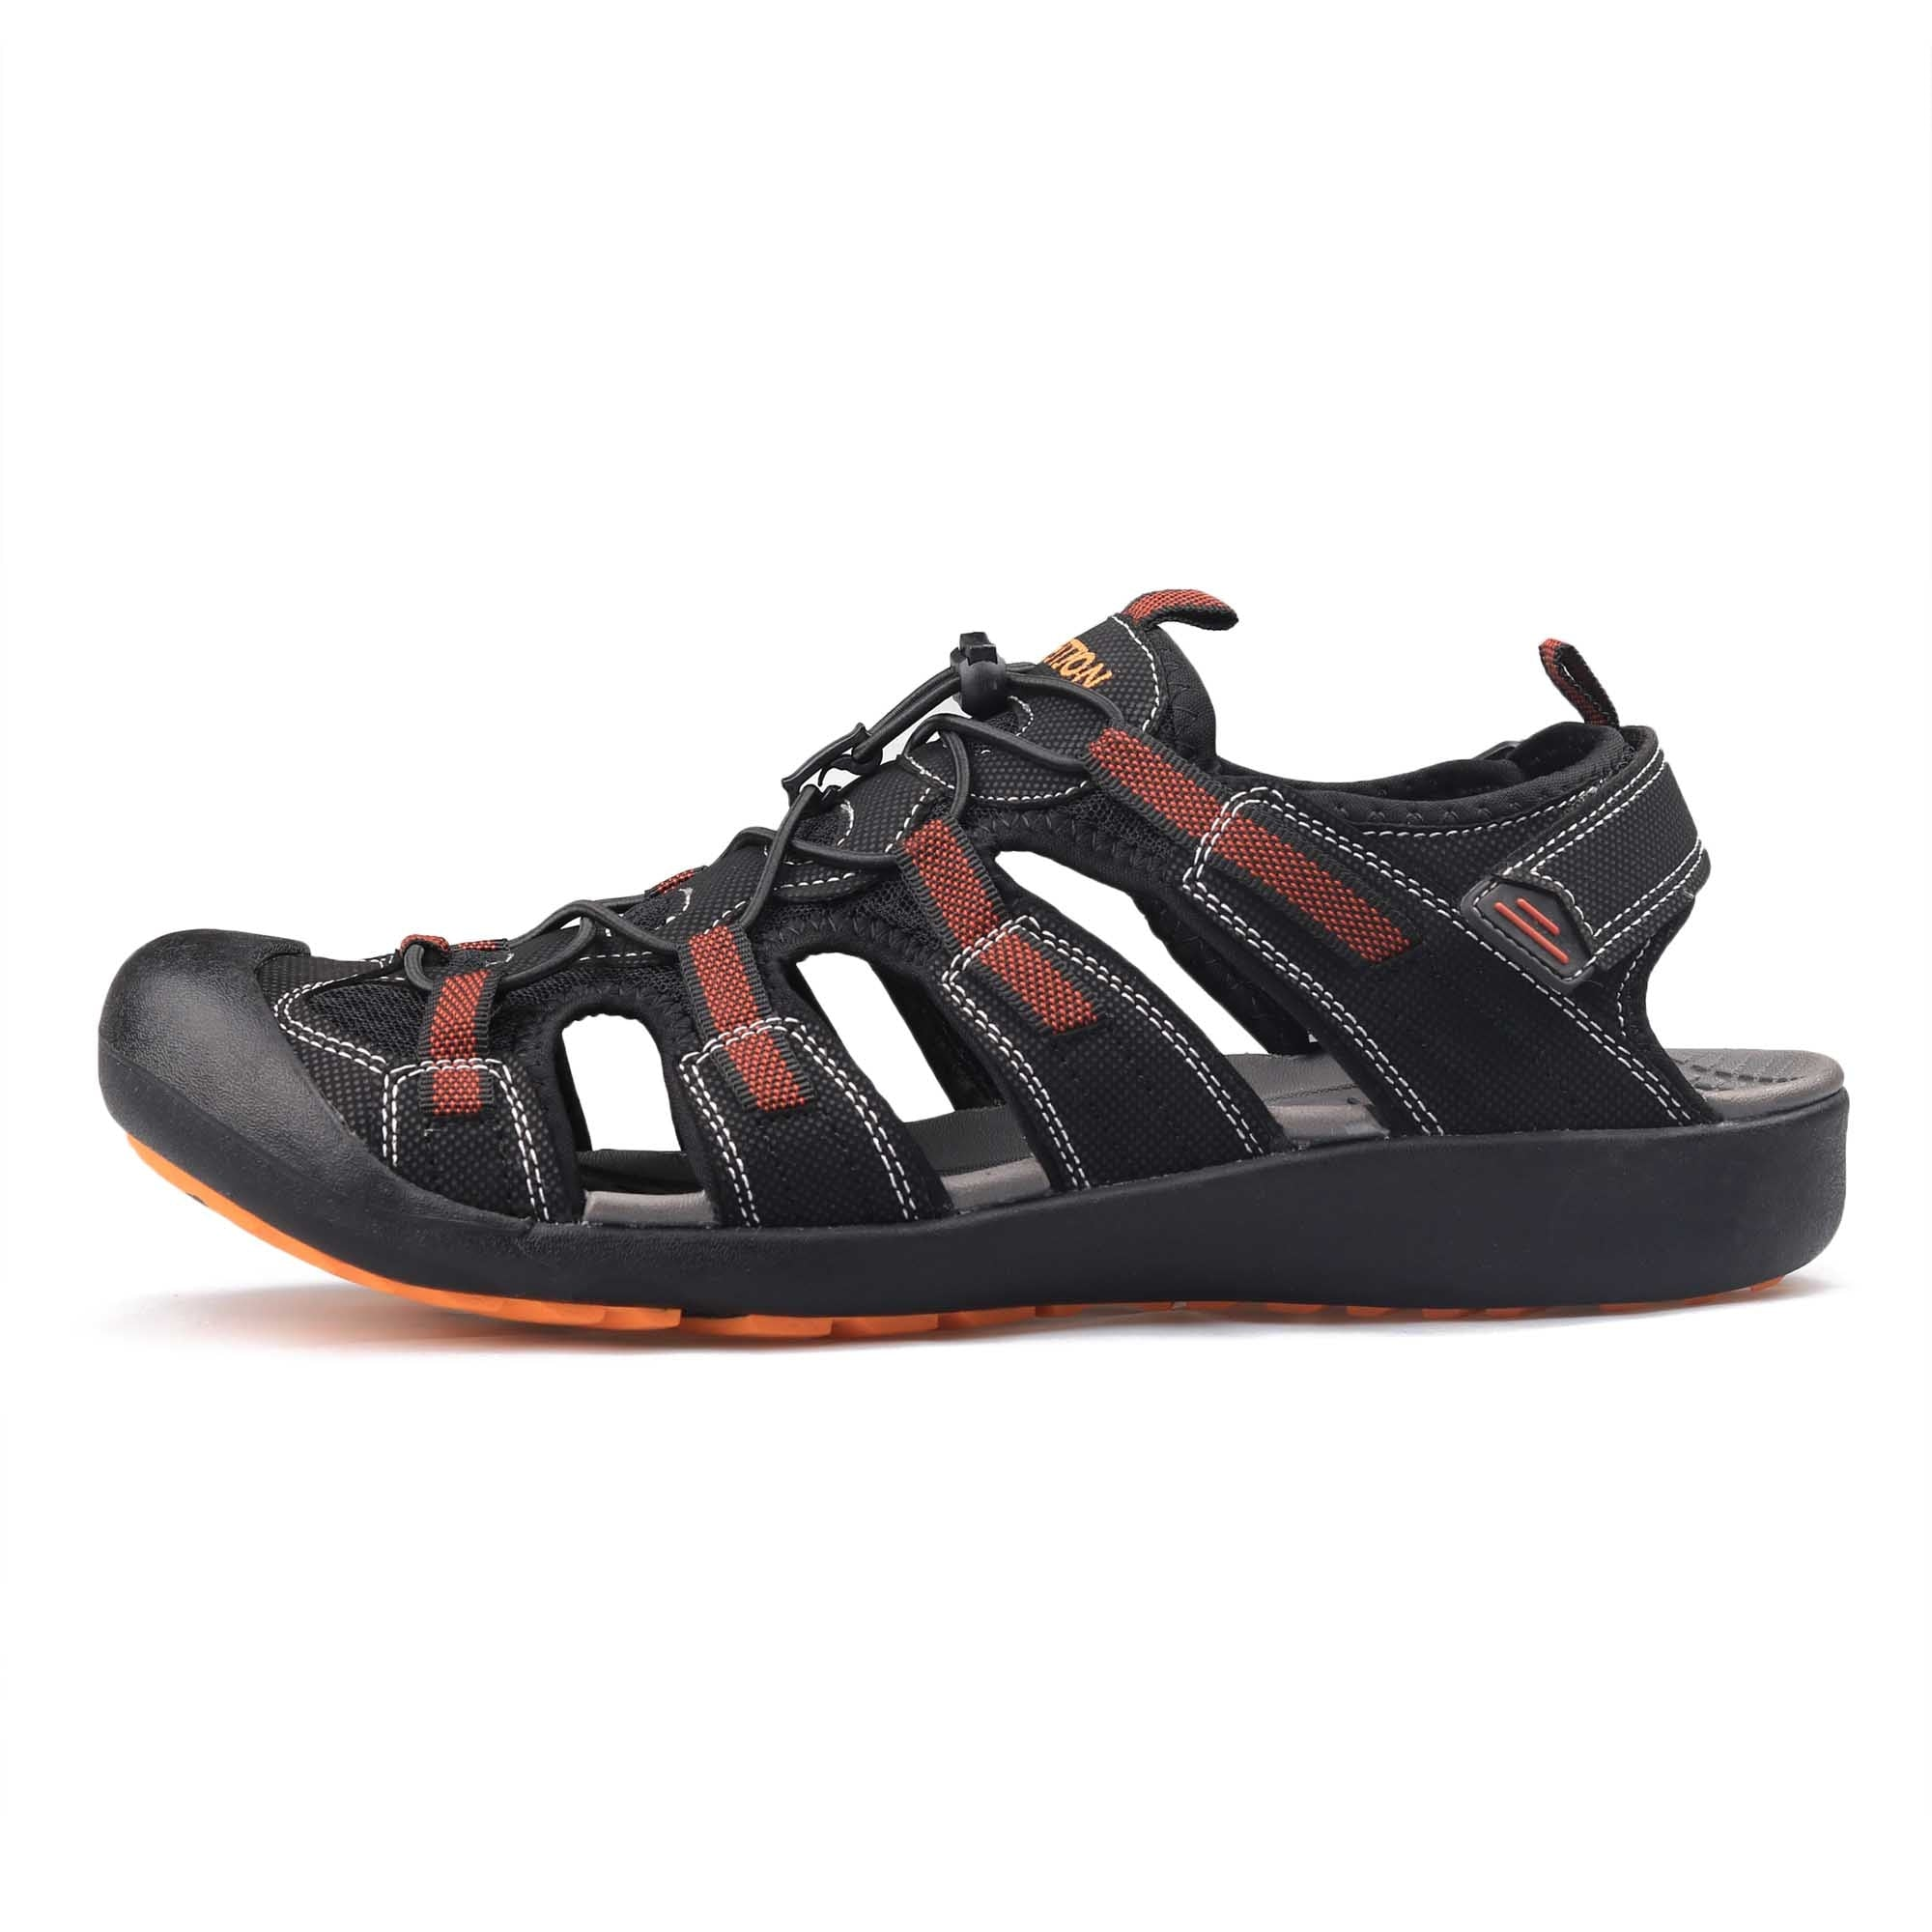 Men Leather Sandals Outdoor Hiking Sport Beach Comfort Casual Walking Shoes 13.5